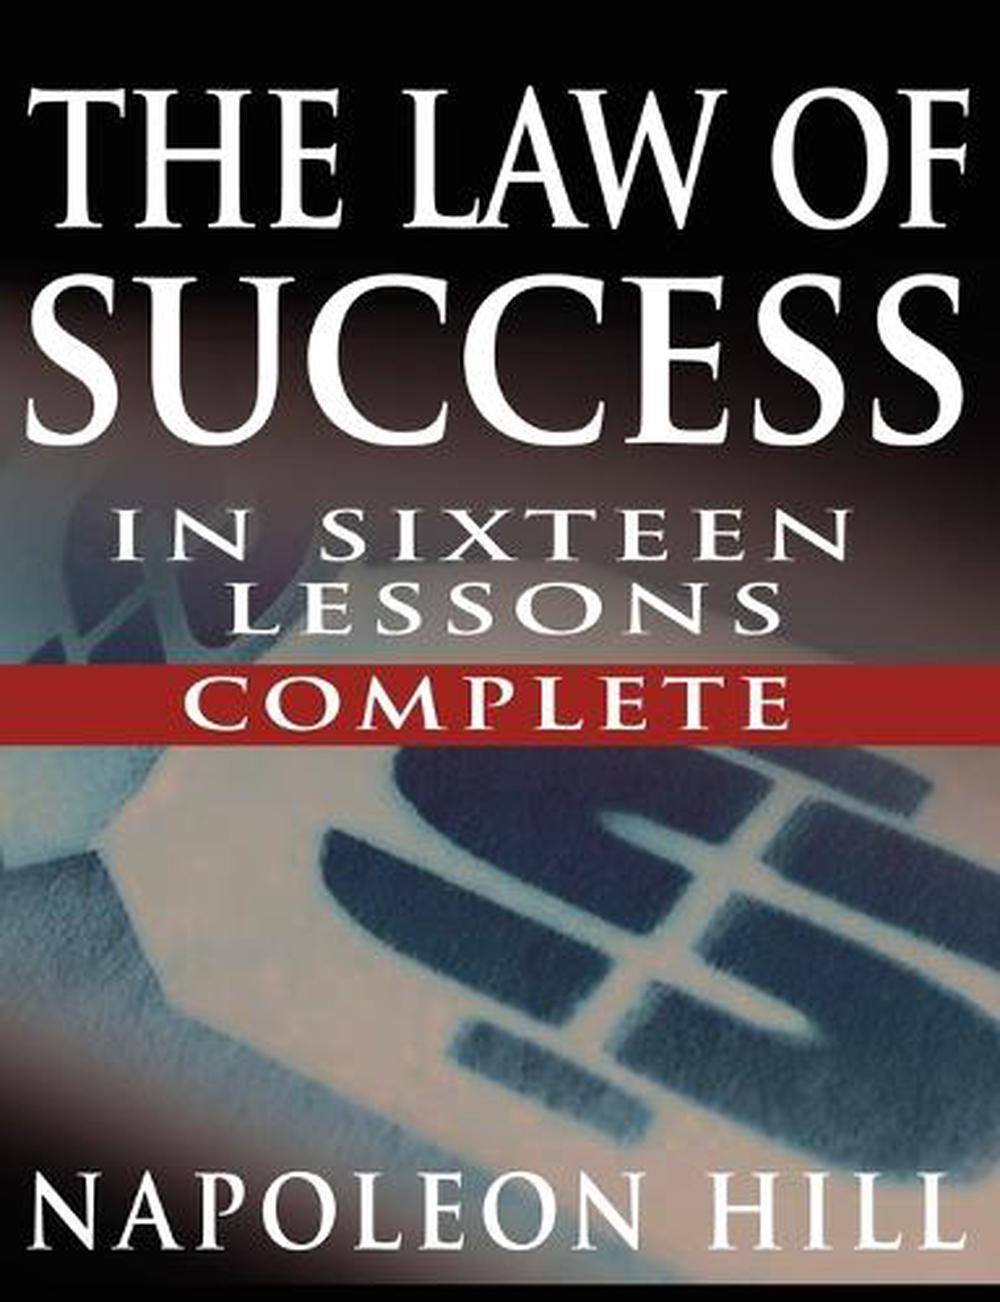 The Law of Success in Sixteen Lessons by Napoleon Hill